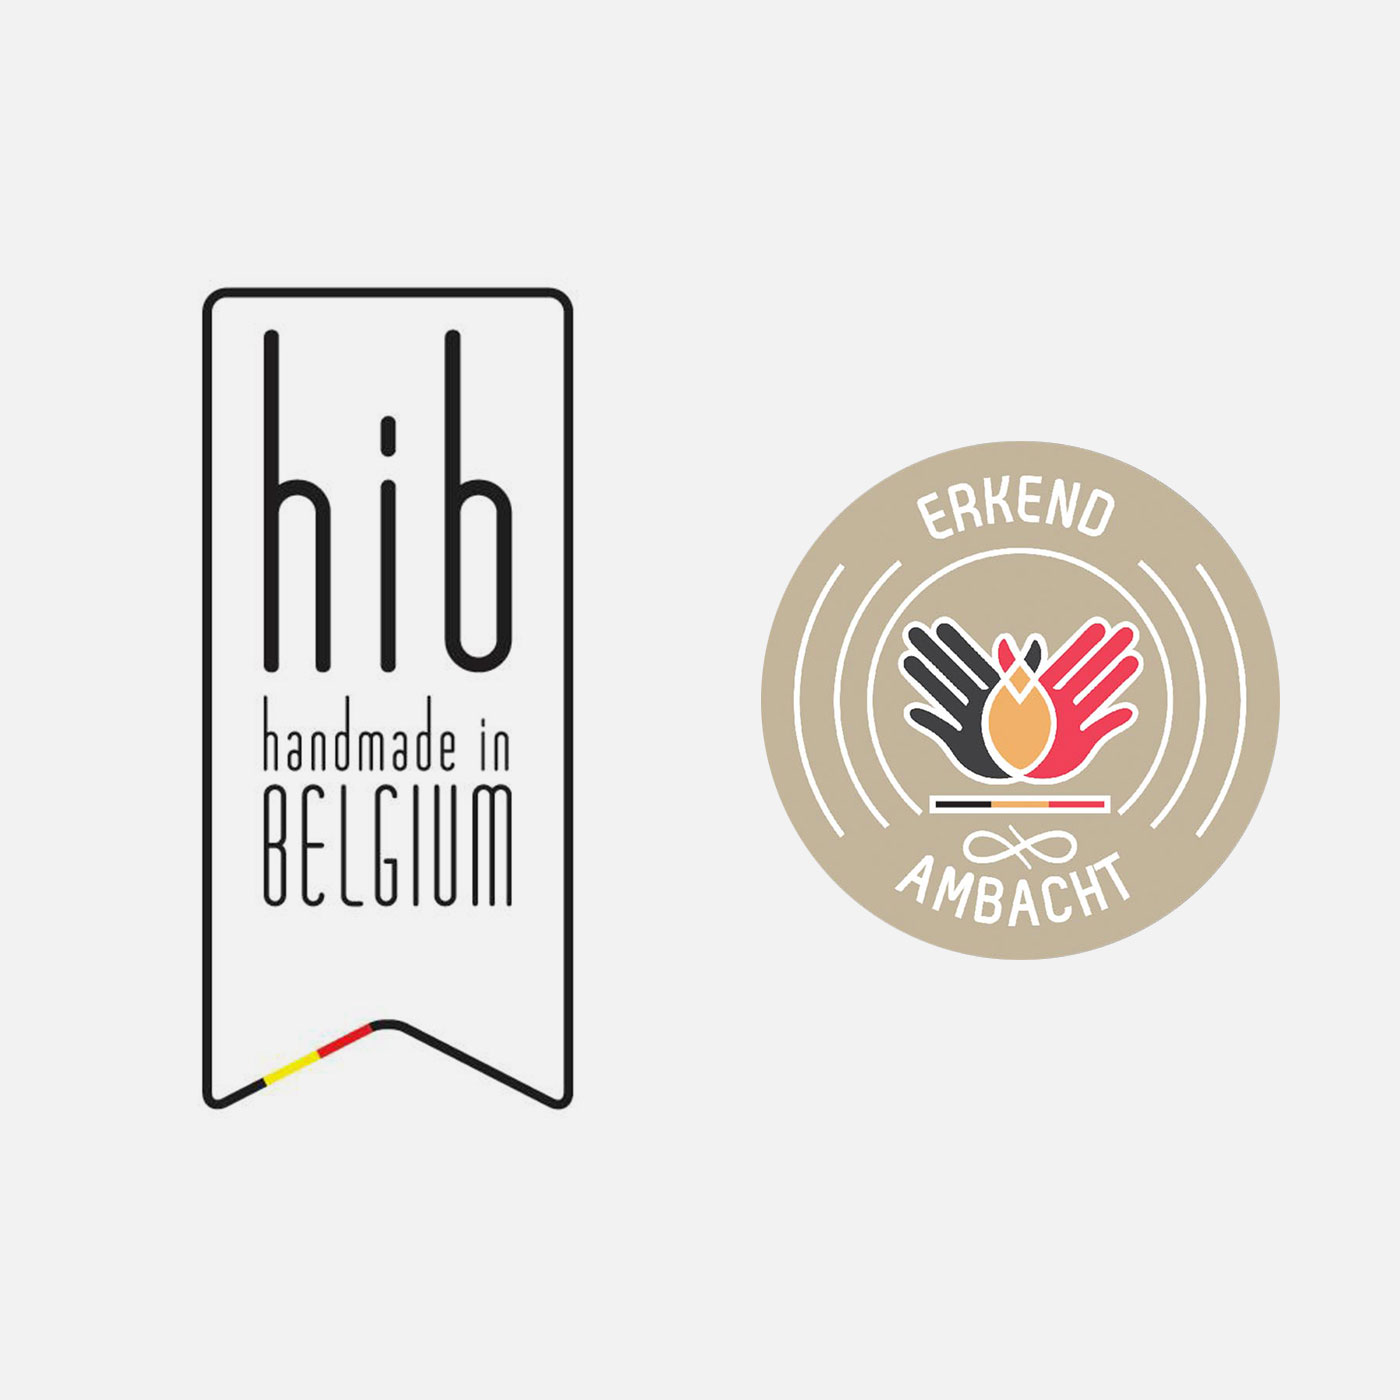 Handmade in Belgium label en Erkend Ambacht label